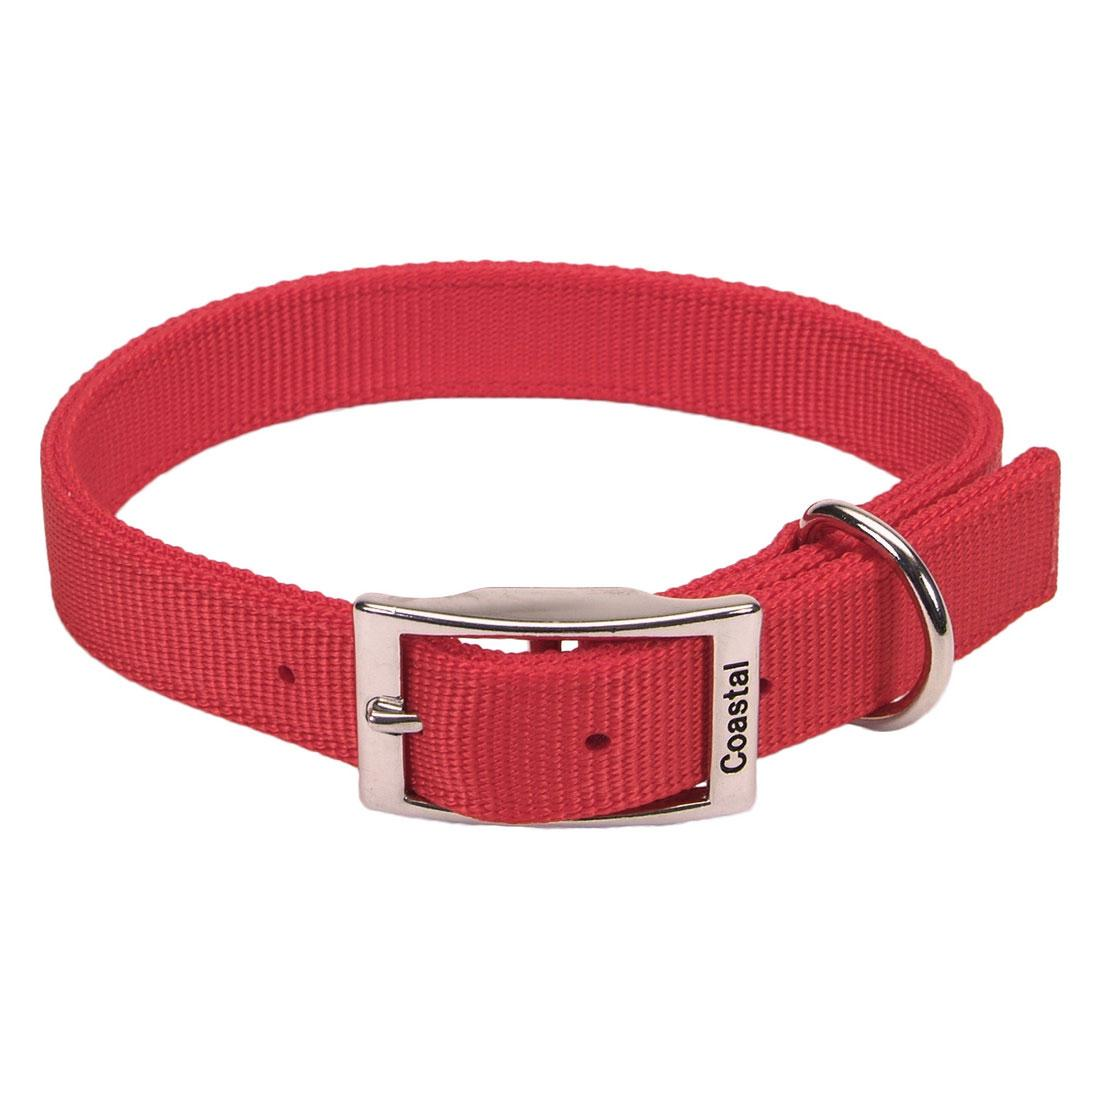 Coastal Double-Ply Nylon Dog Collar, Red, 1-in x 26-in